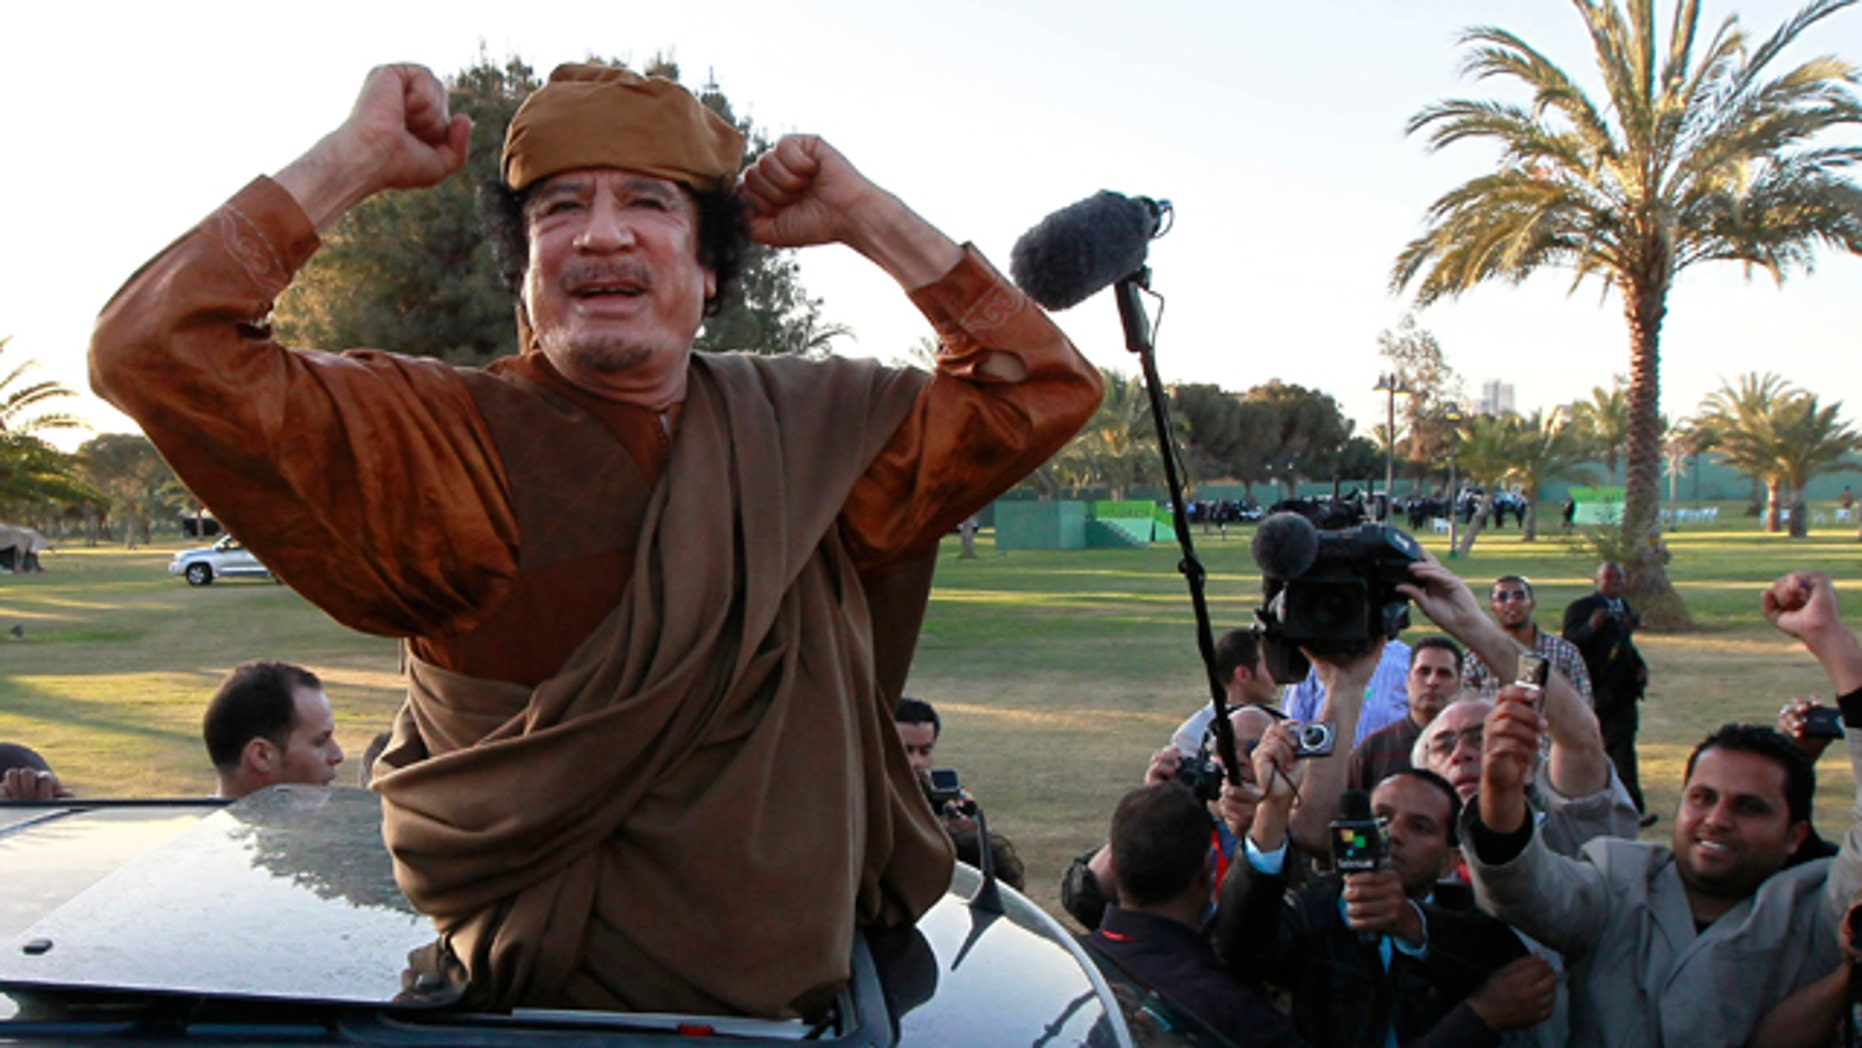 April 10, 2011: Libyan leader Moammar Qaddafi waves at his supporters people in Tripoli